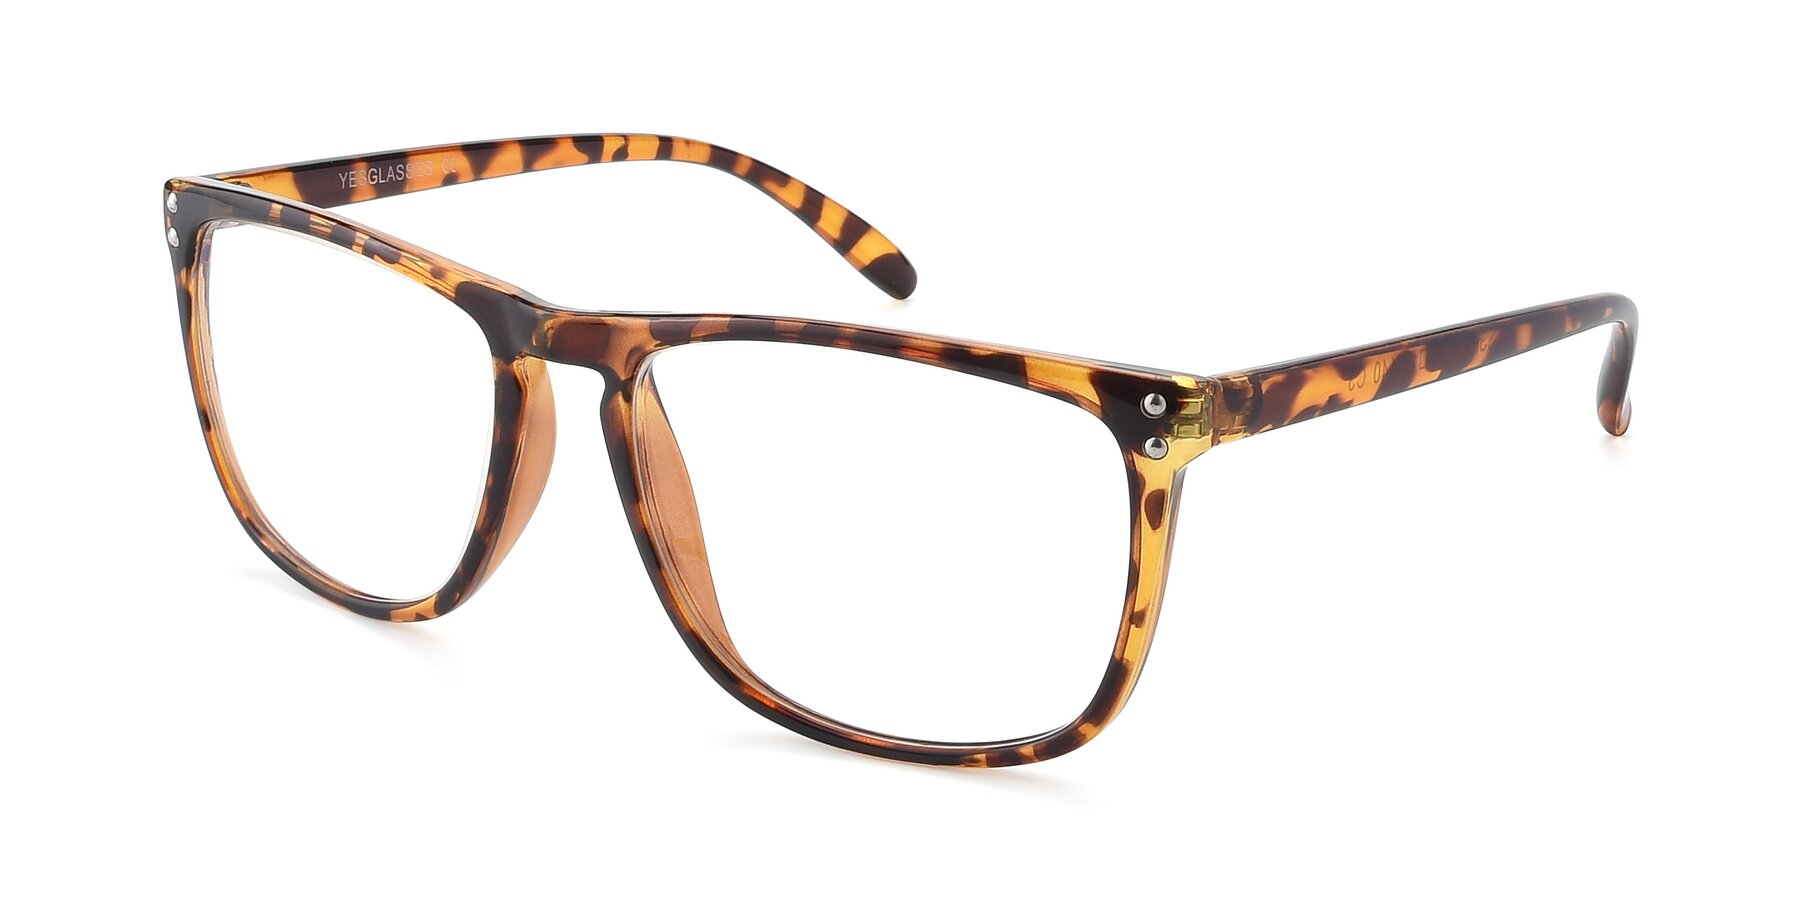 Angle of SSR411 in Translucent Orange Tortoise with Clear Eyeglass Lenses